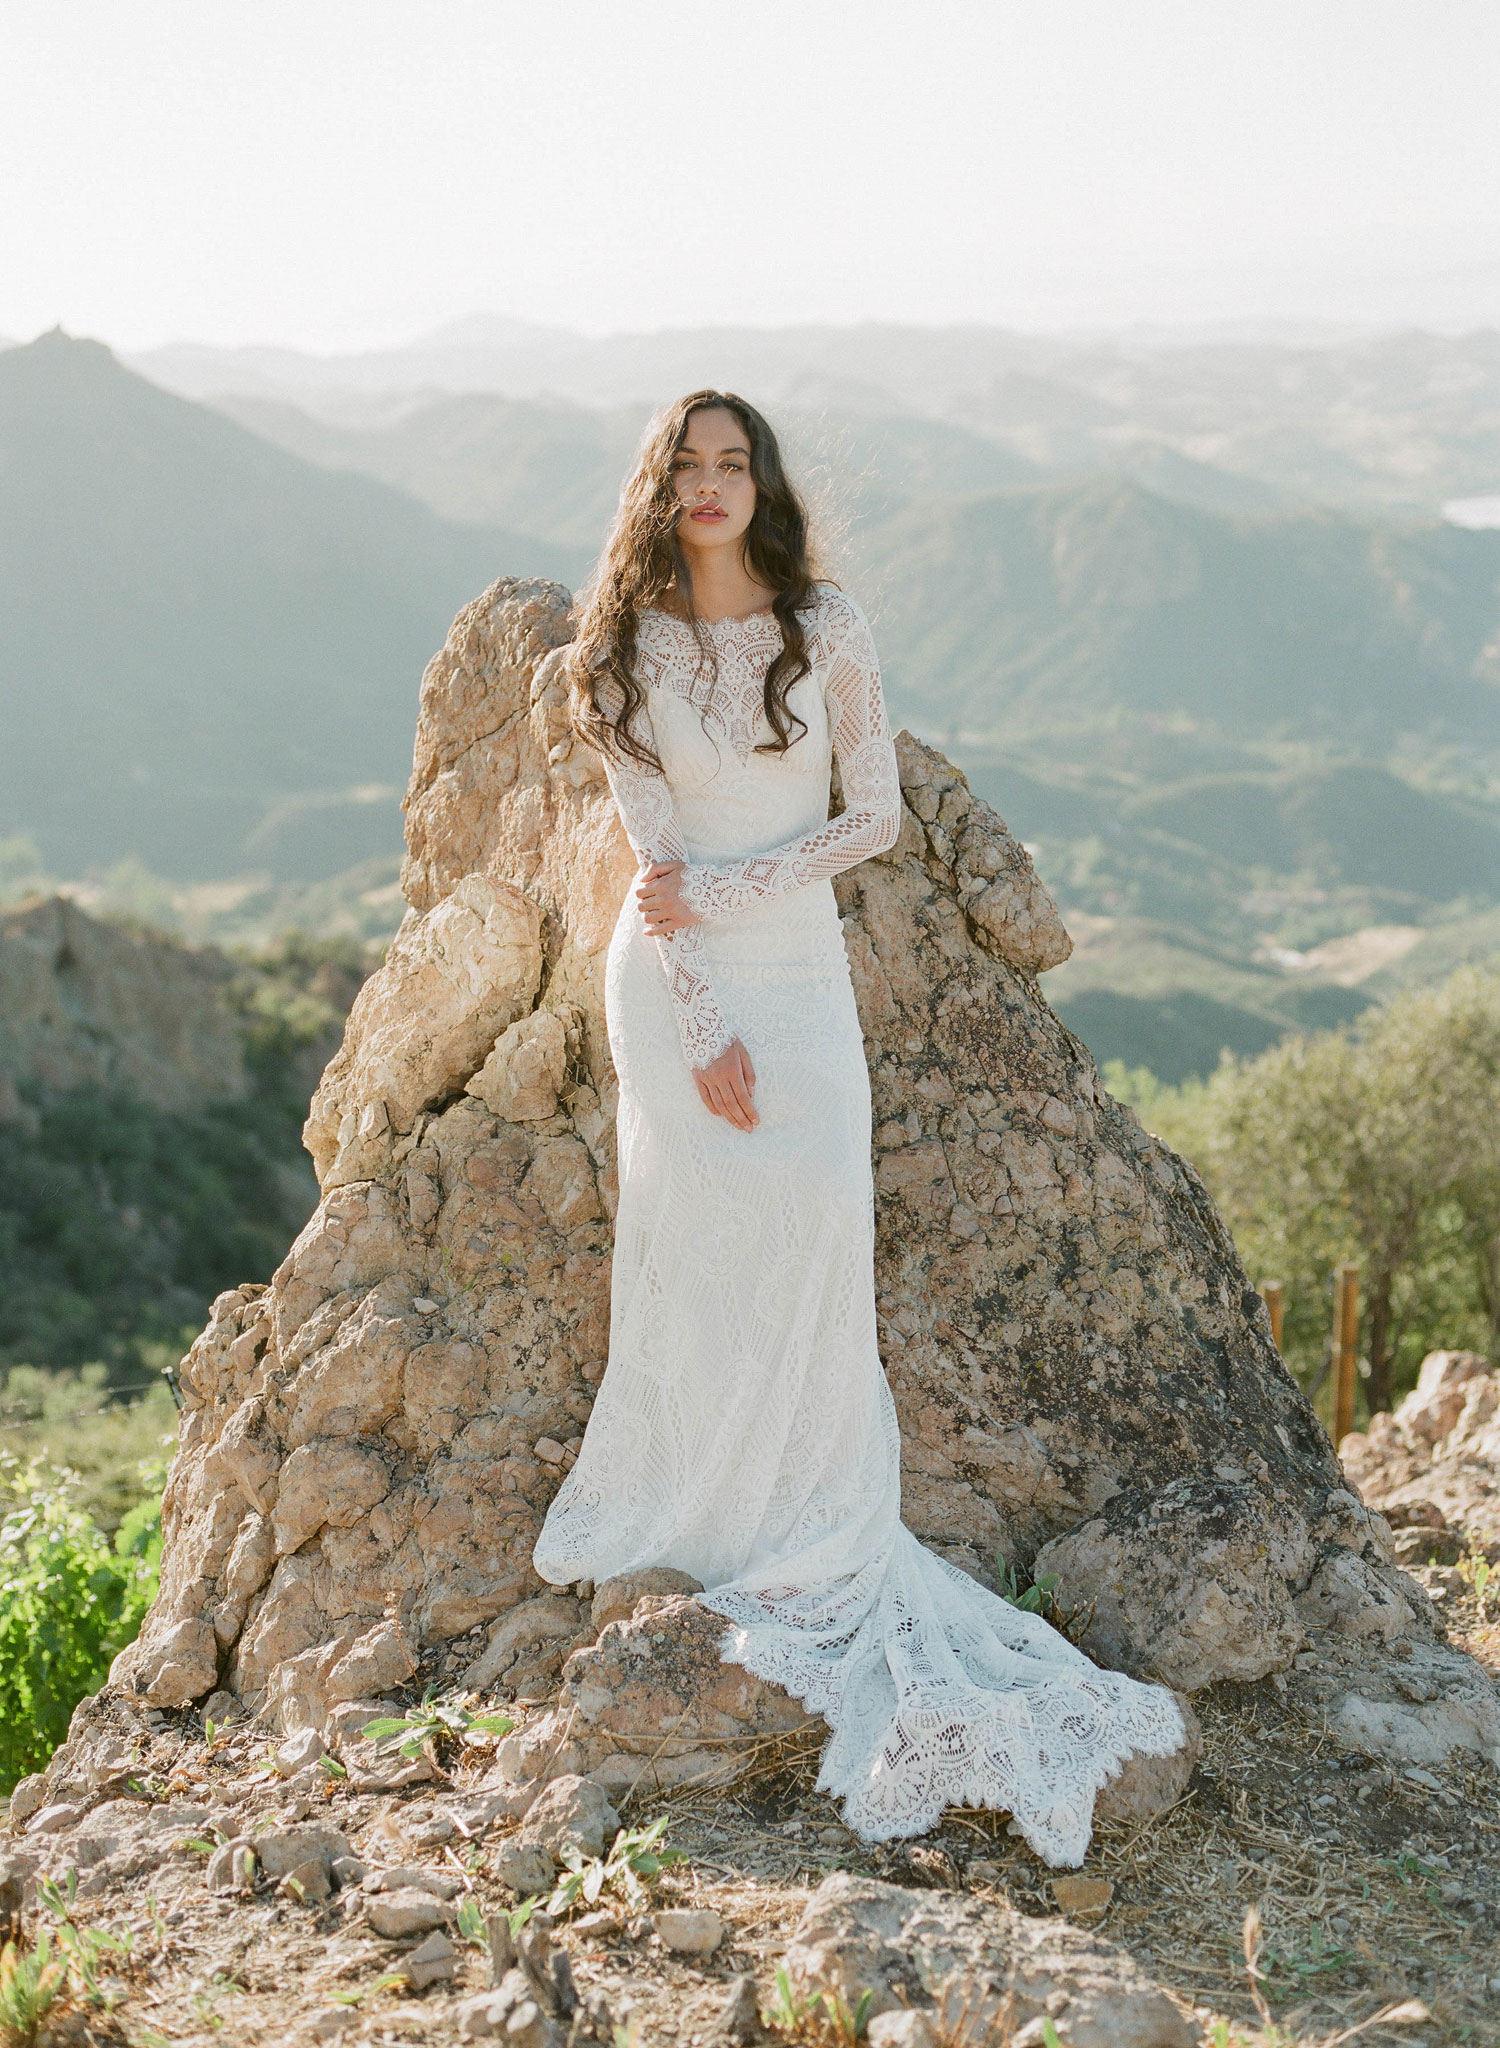 Claire Pettibone Romantique Shenandoah wedding dress 2018 The Vineyard Collection long sleeve high neck